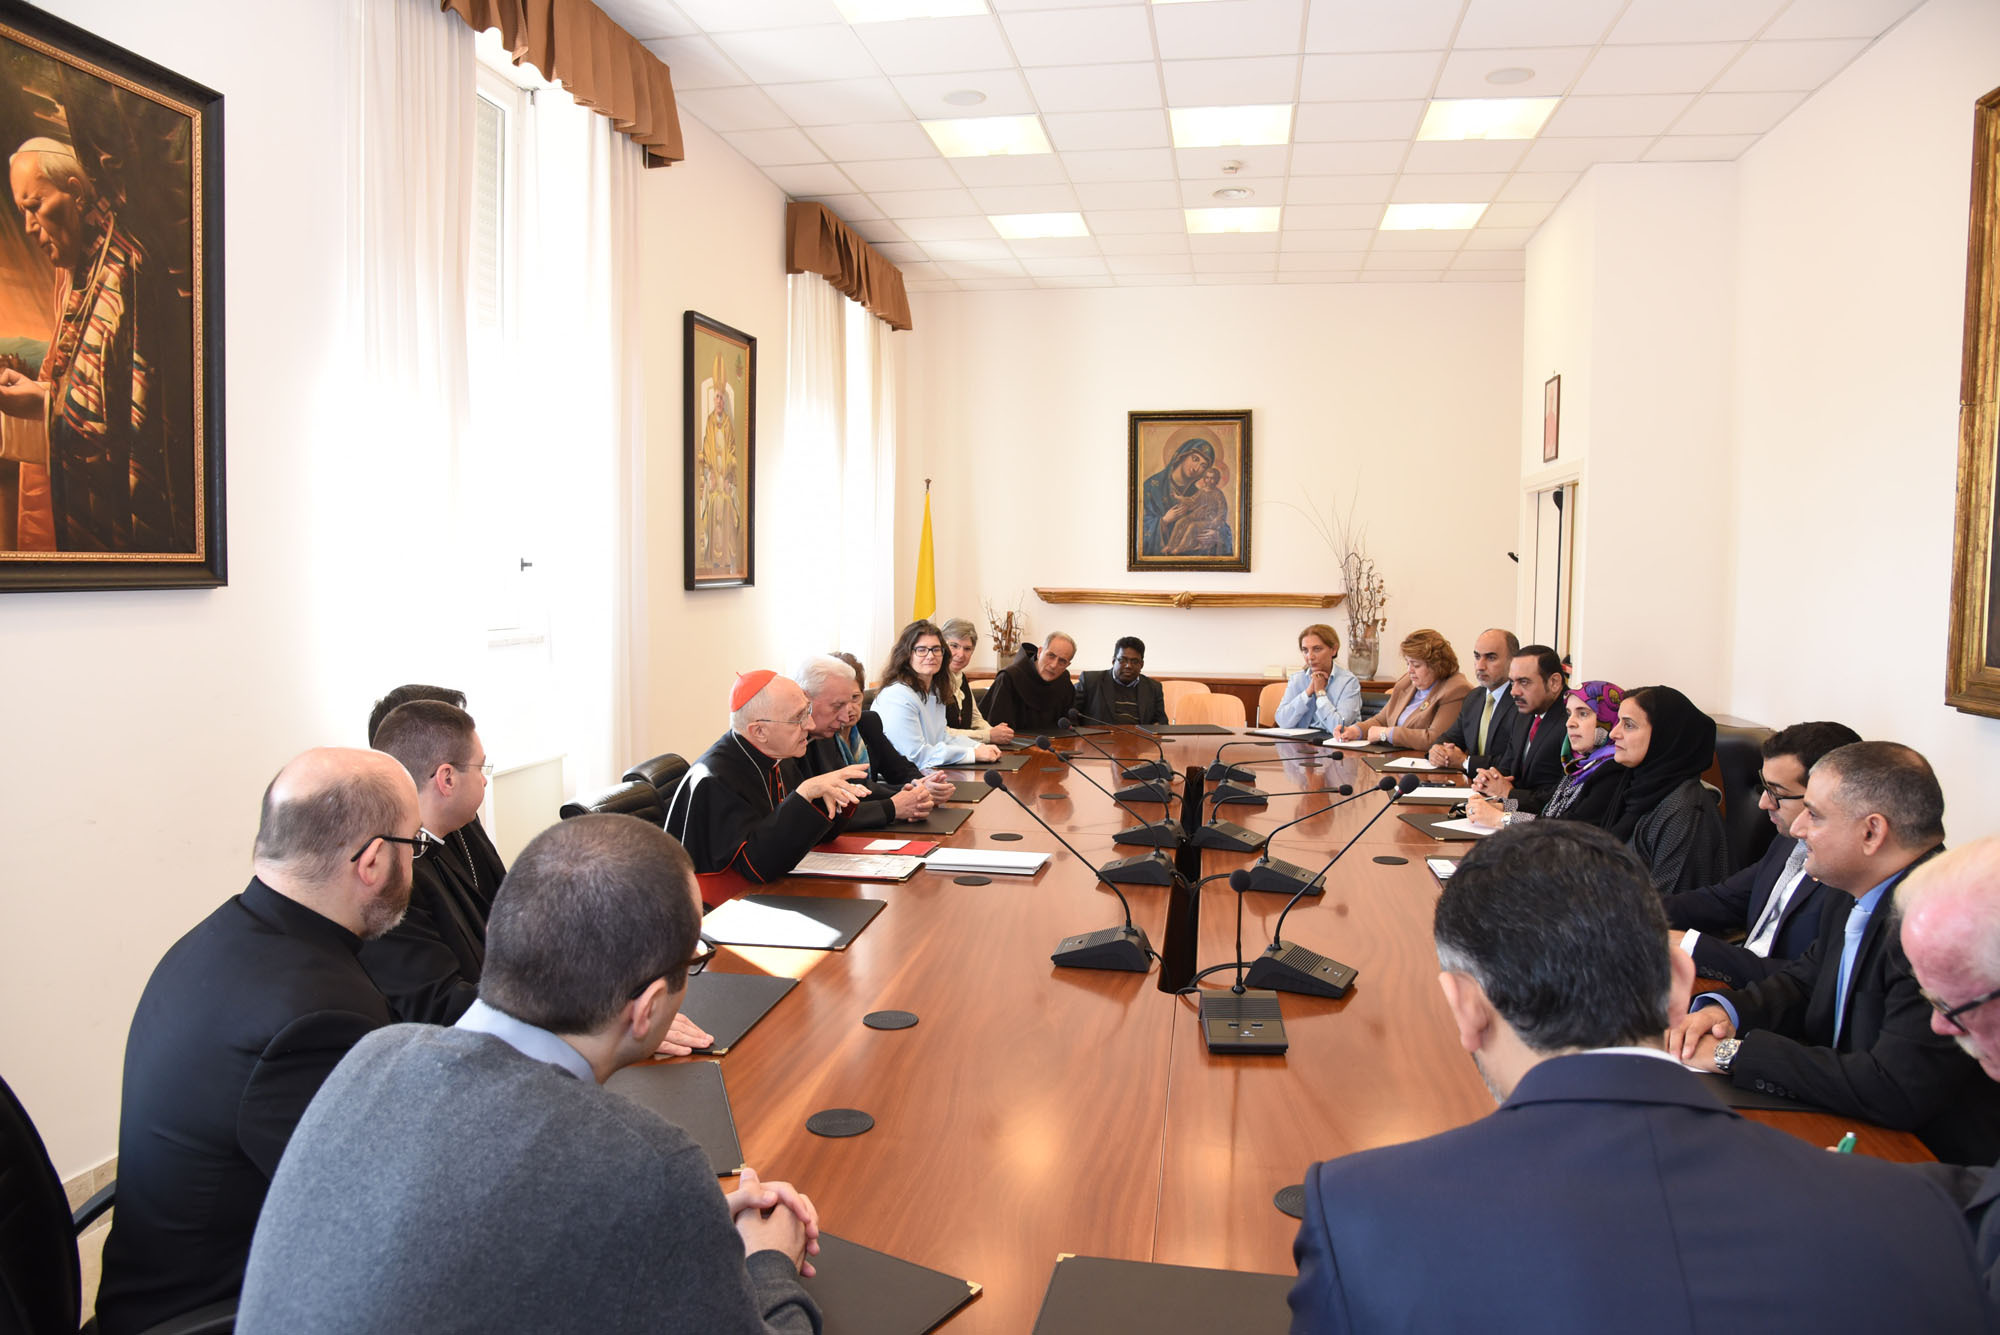 2 meeting of the uae delegation to the vatican